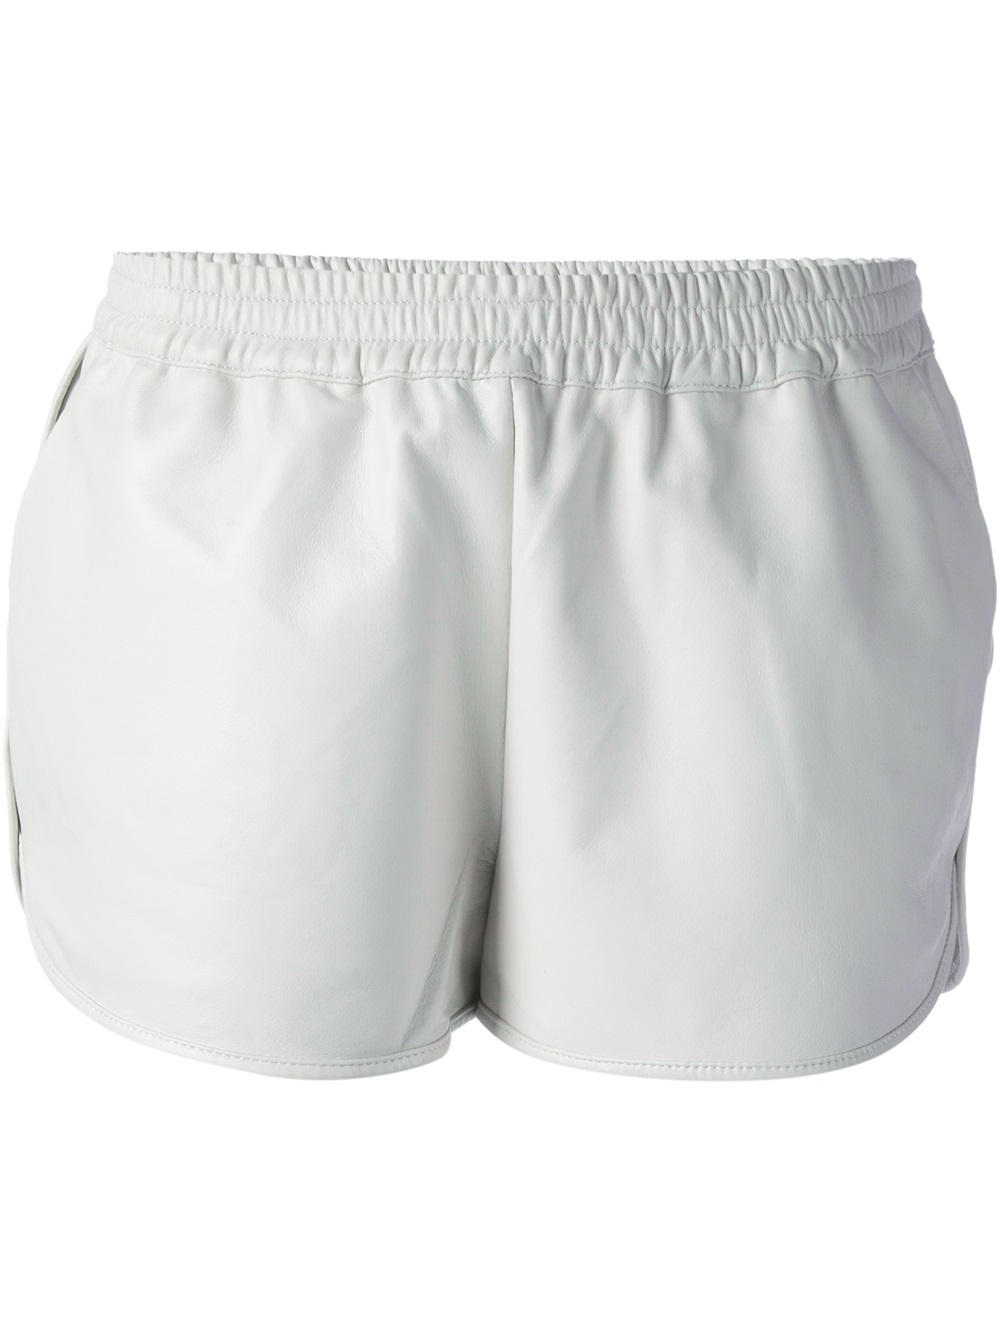 White Leather Shorts